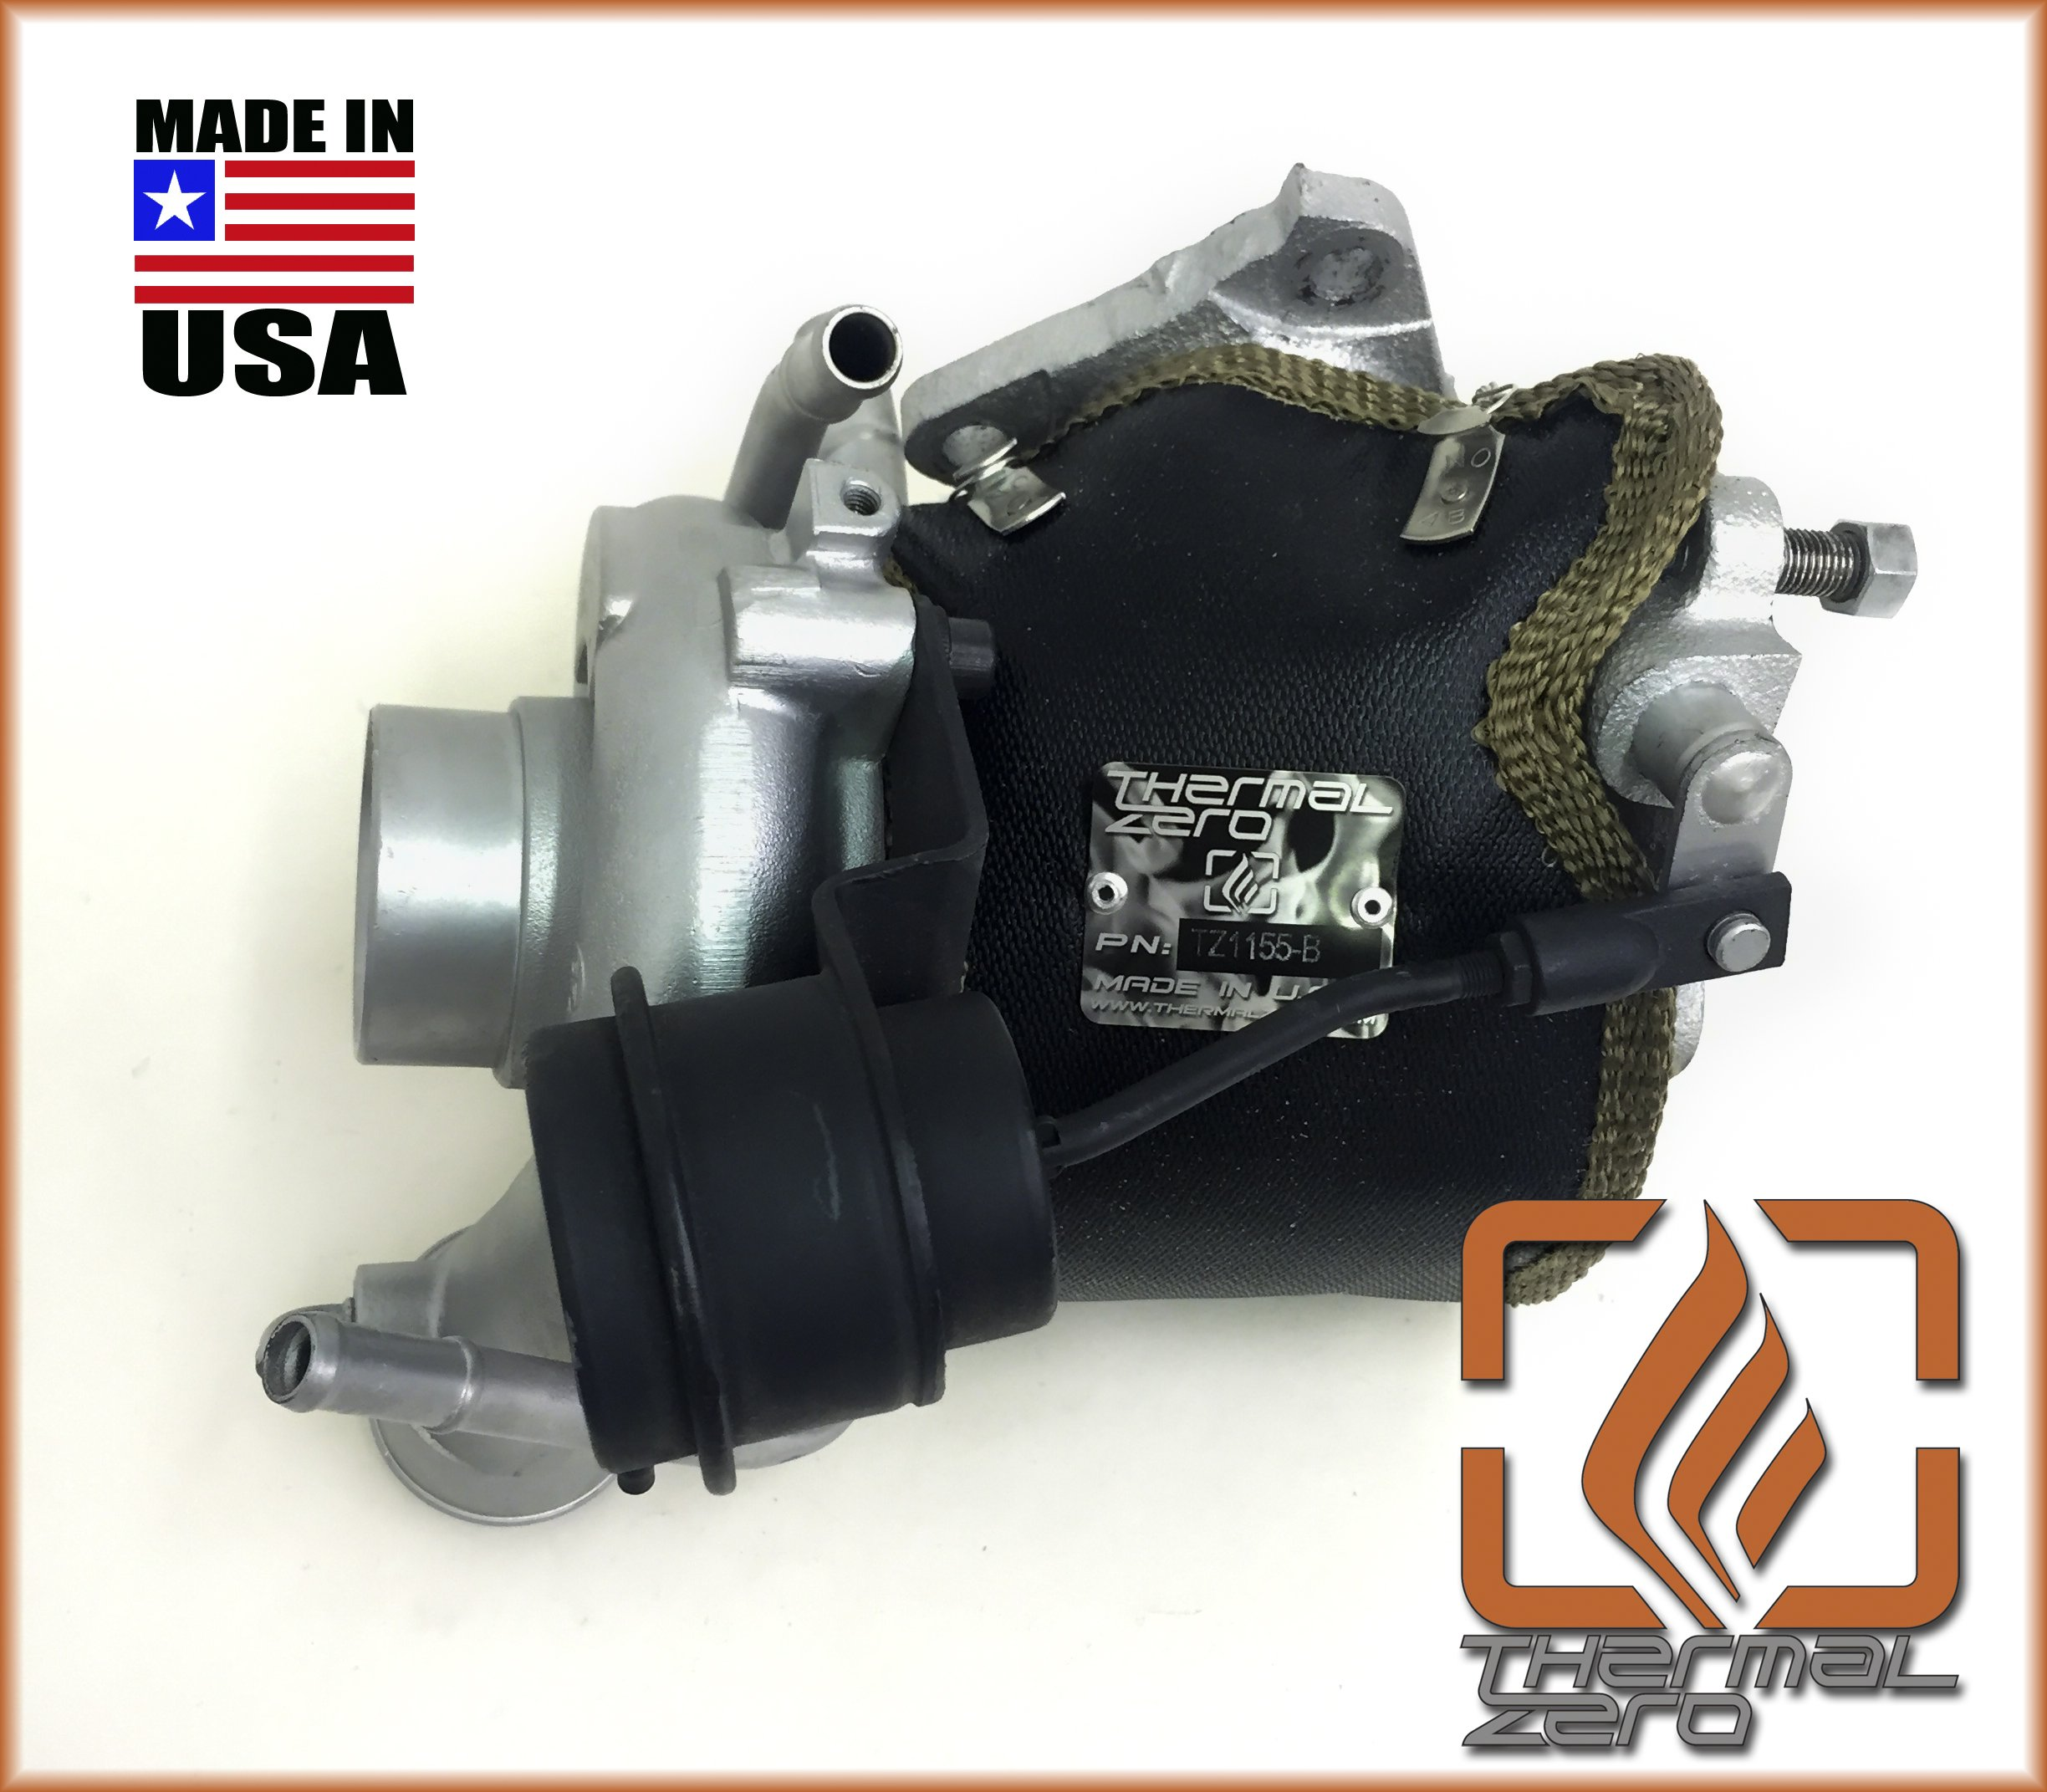 TZ1155-B MADE IN USA Thermal Zero 2500°F Wrap around Turbo Blanket - Black + Compatible with most OEM Subaru VF series turbochargers + replacement for turbo heat shield by Thermal Zero